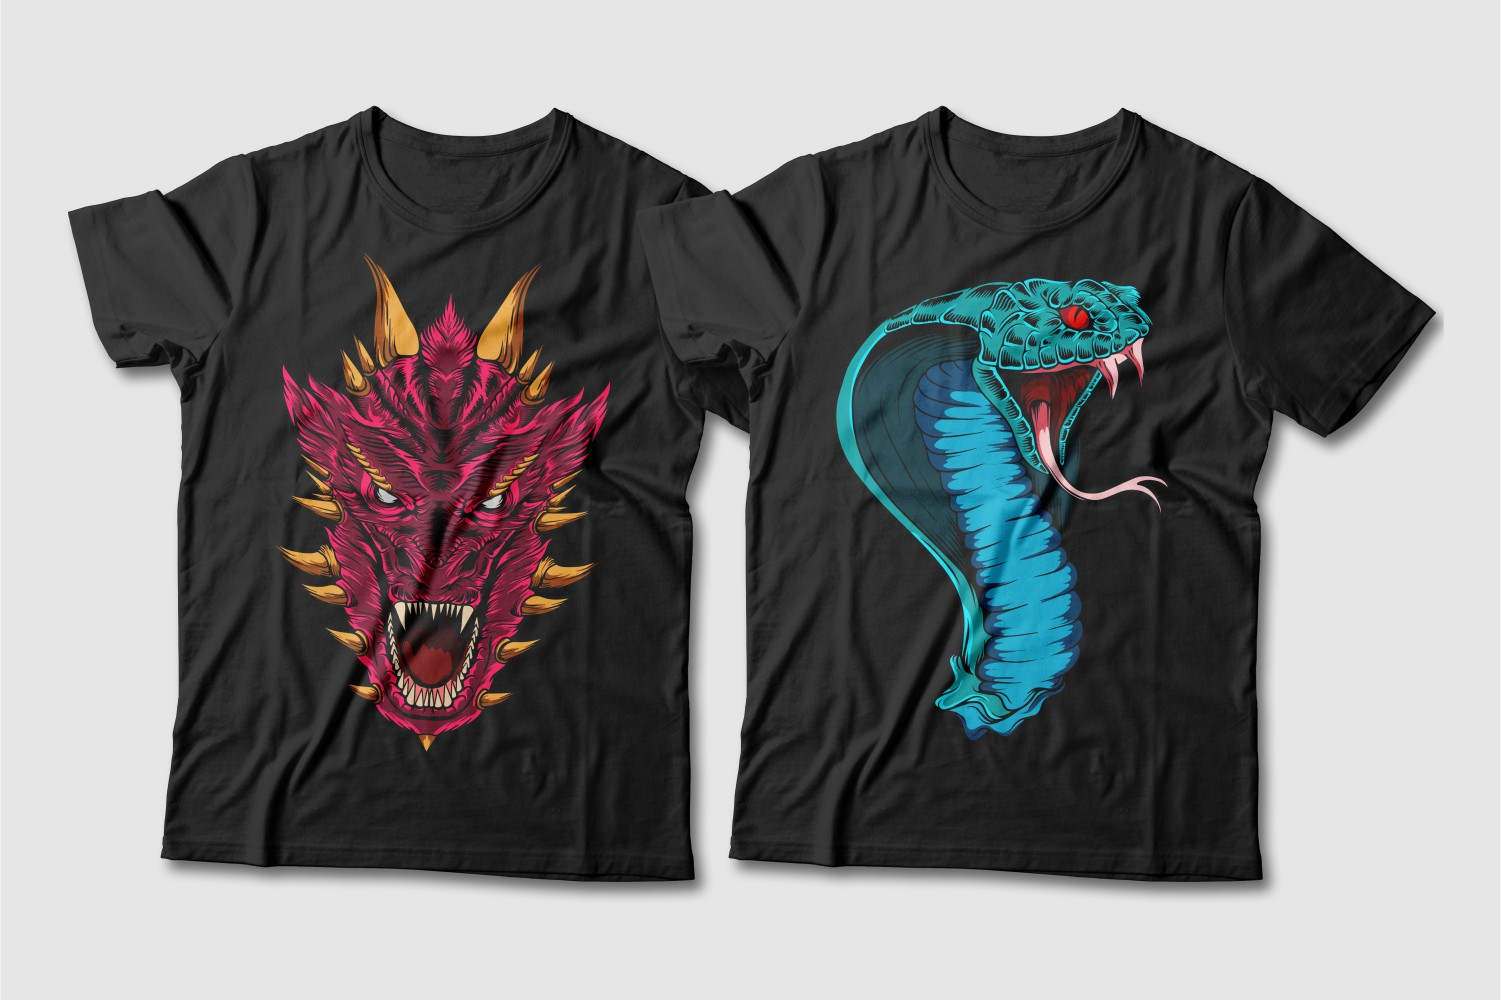 Black T-shirts with a crew neck featuring a red dragon with brown horns and a turquoise cobra with red eyes.